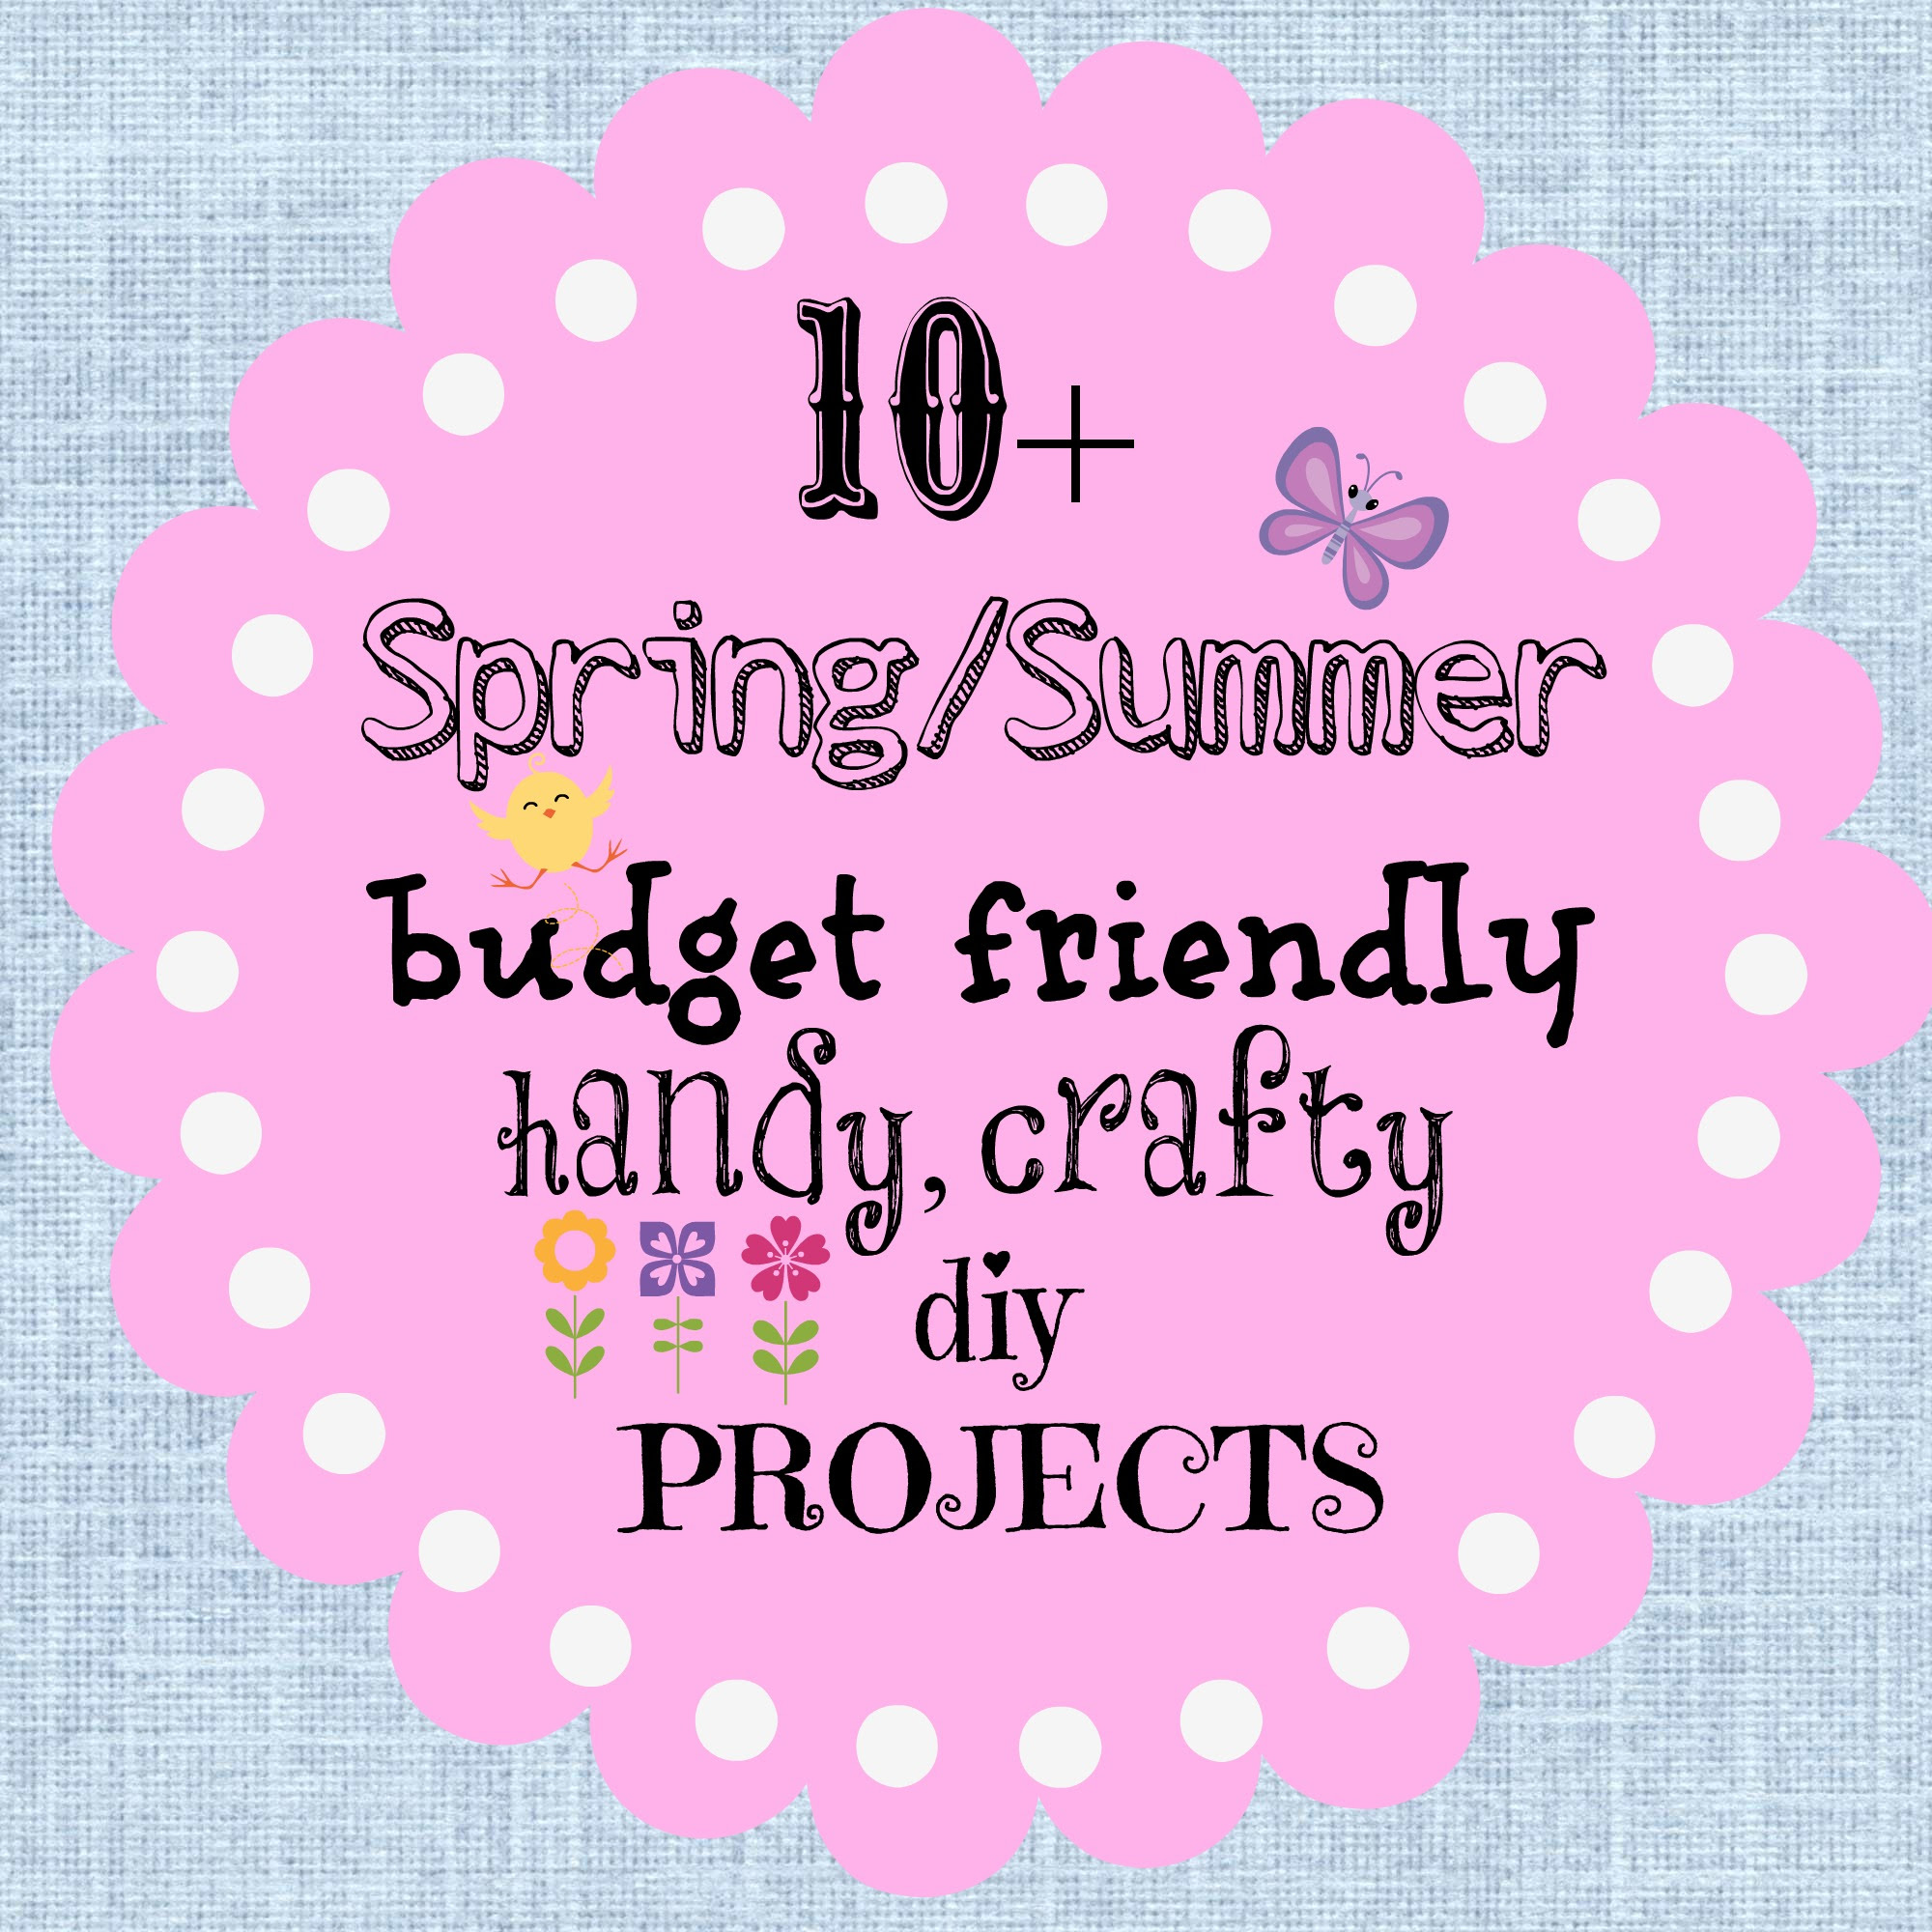 Spring-summer budget friendly crafts